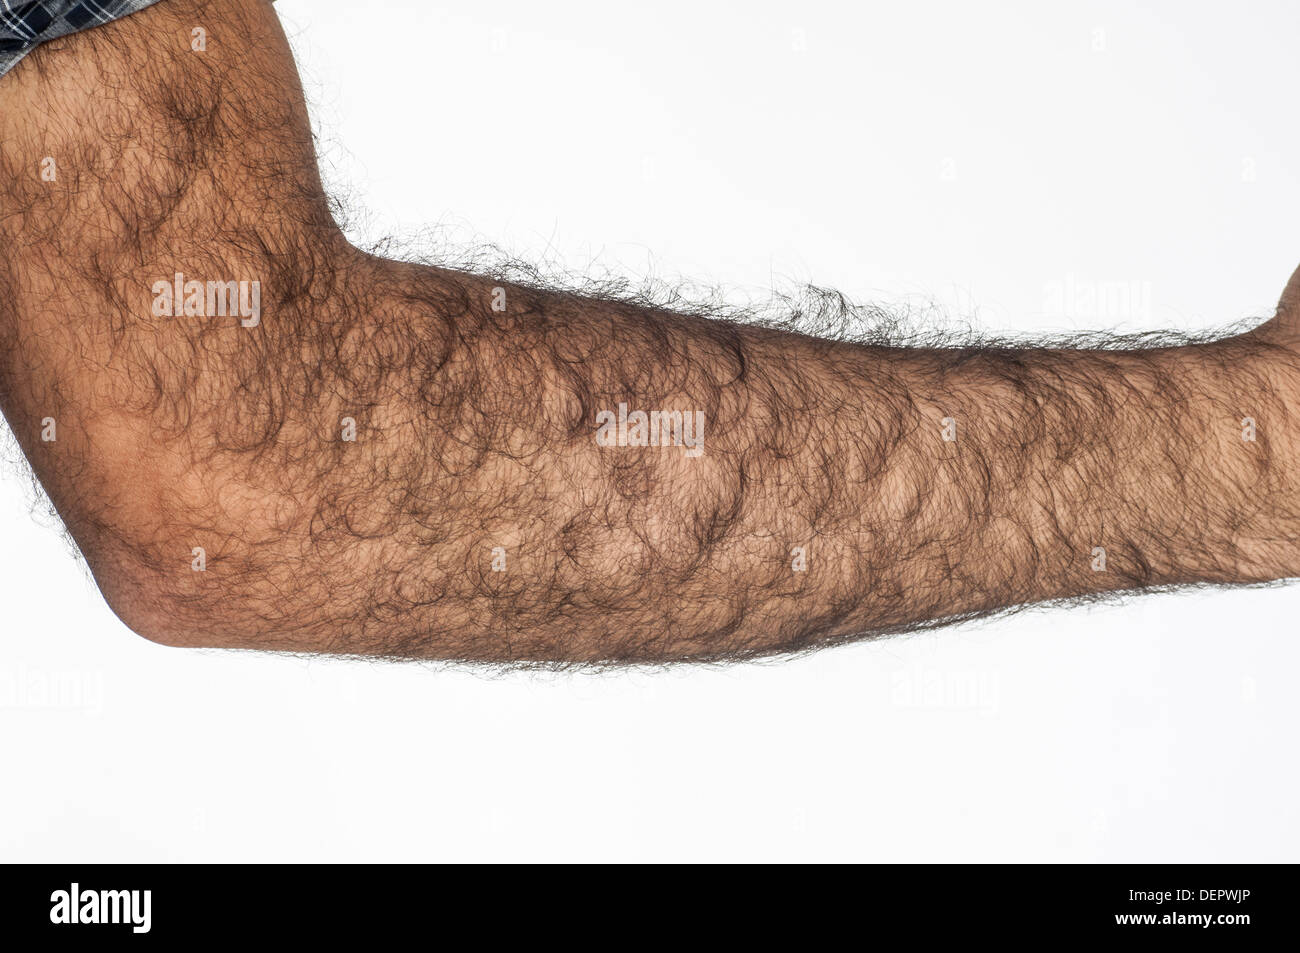 Close up of a hairy man's arm - Stock Image